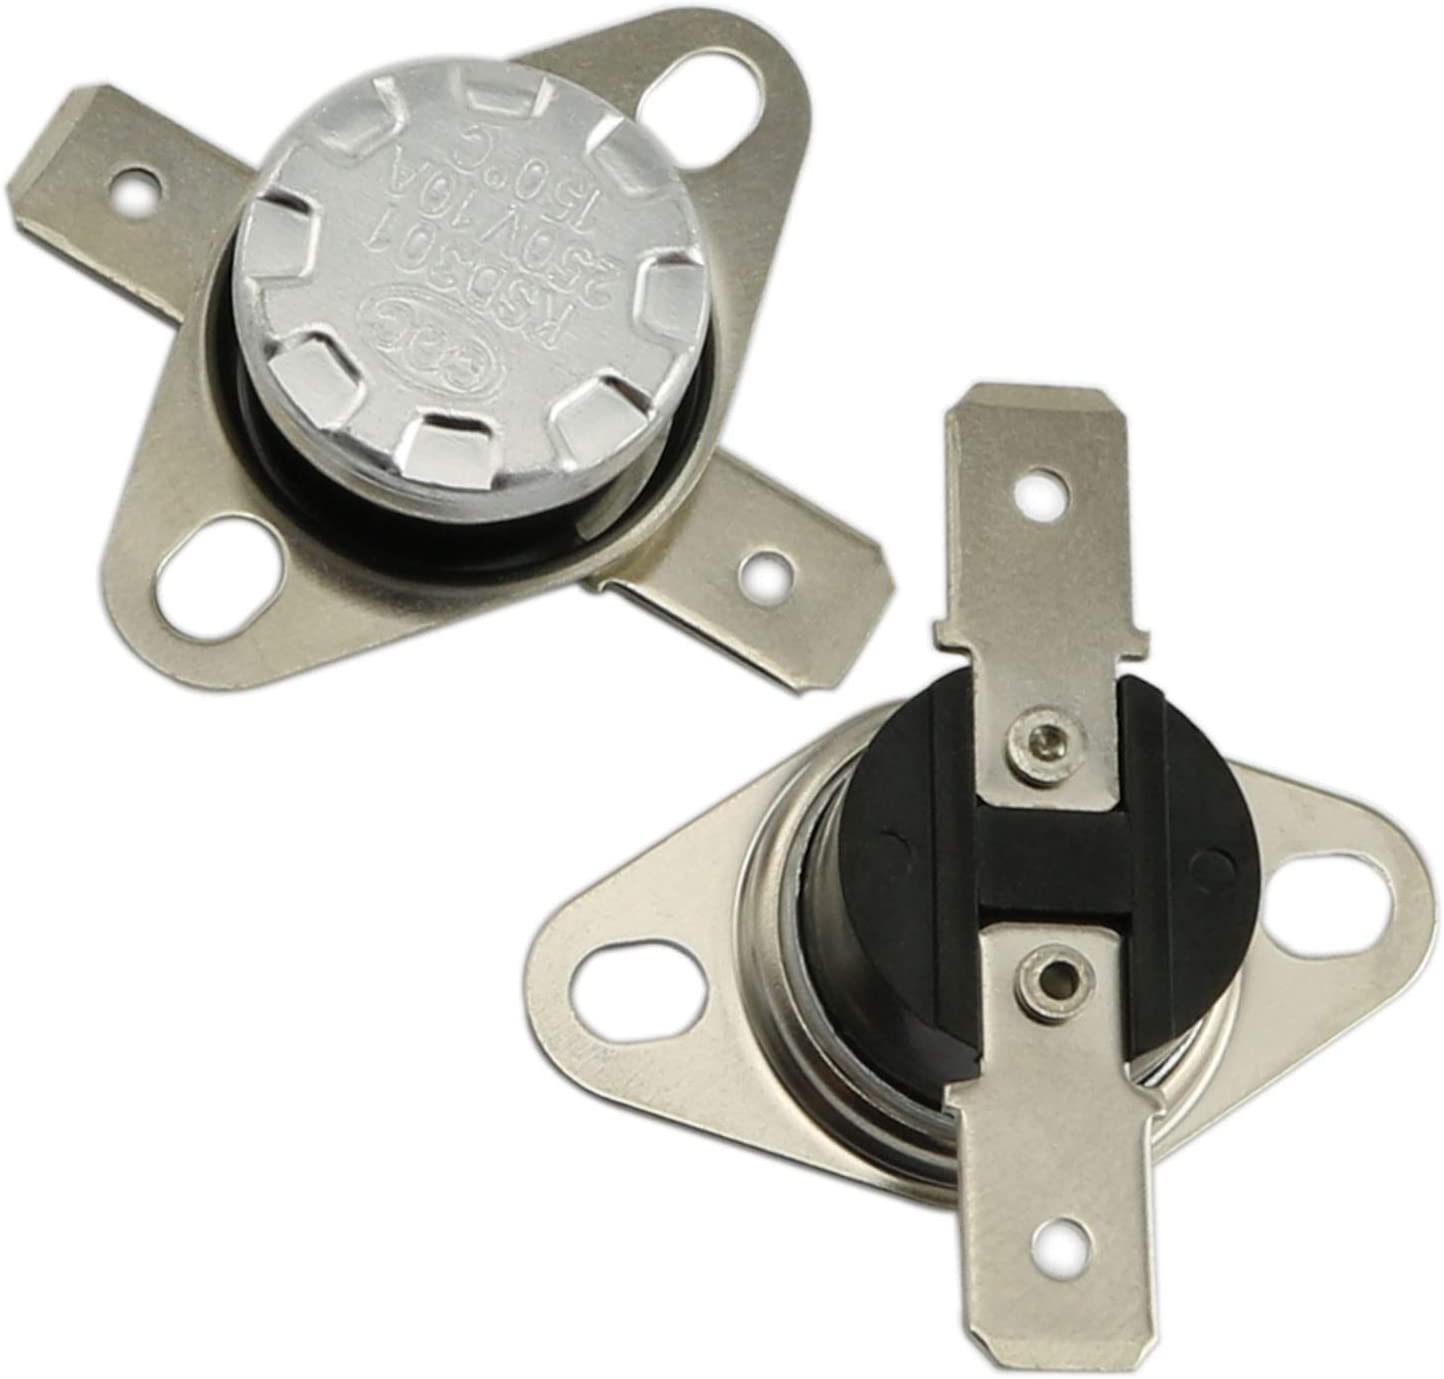 RuiLing 2-Pack KSD-01F Thermostat N.C Normally Close 90 Degree Centigrade Temperature Sensor Thermal Switch